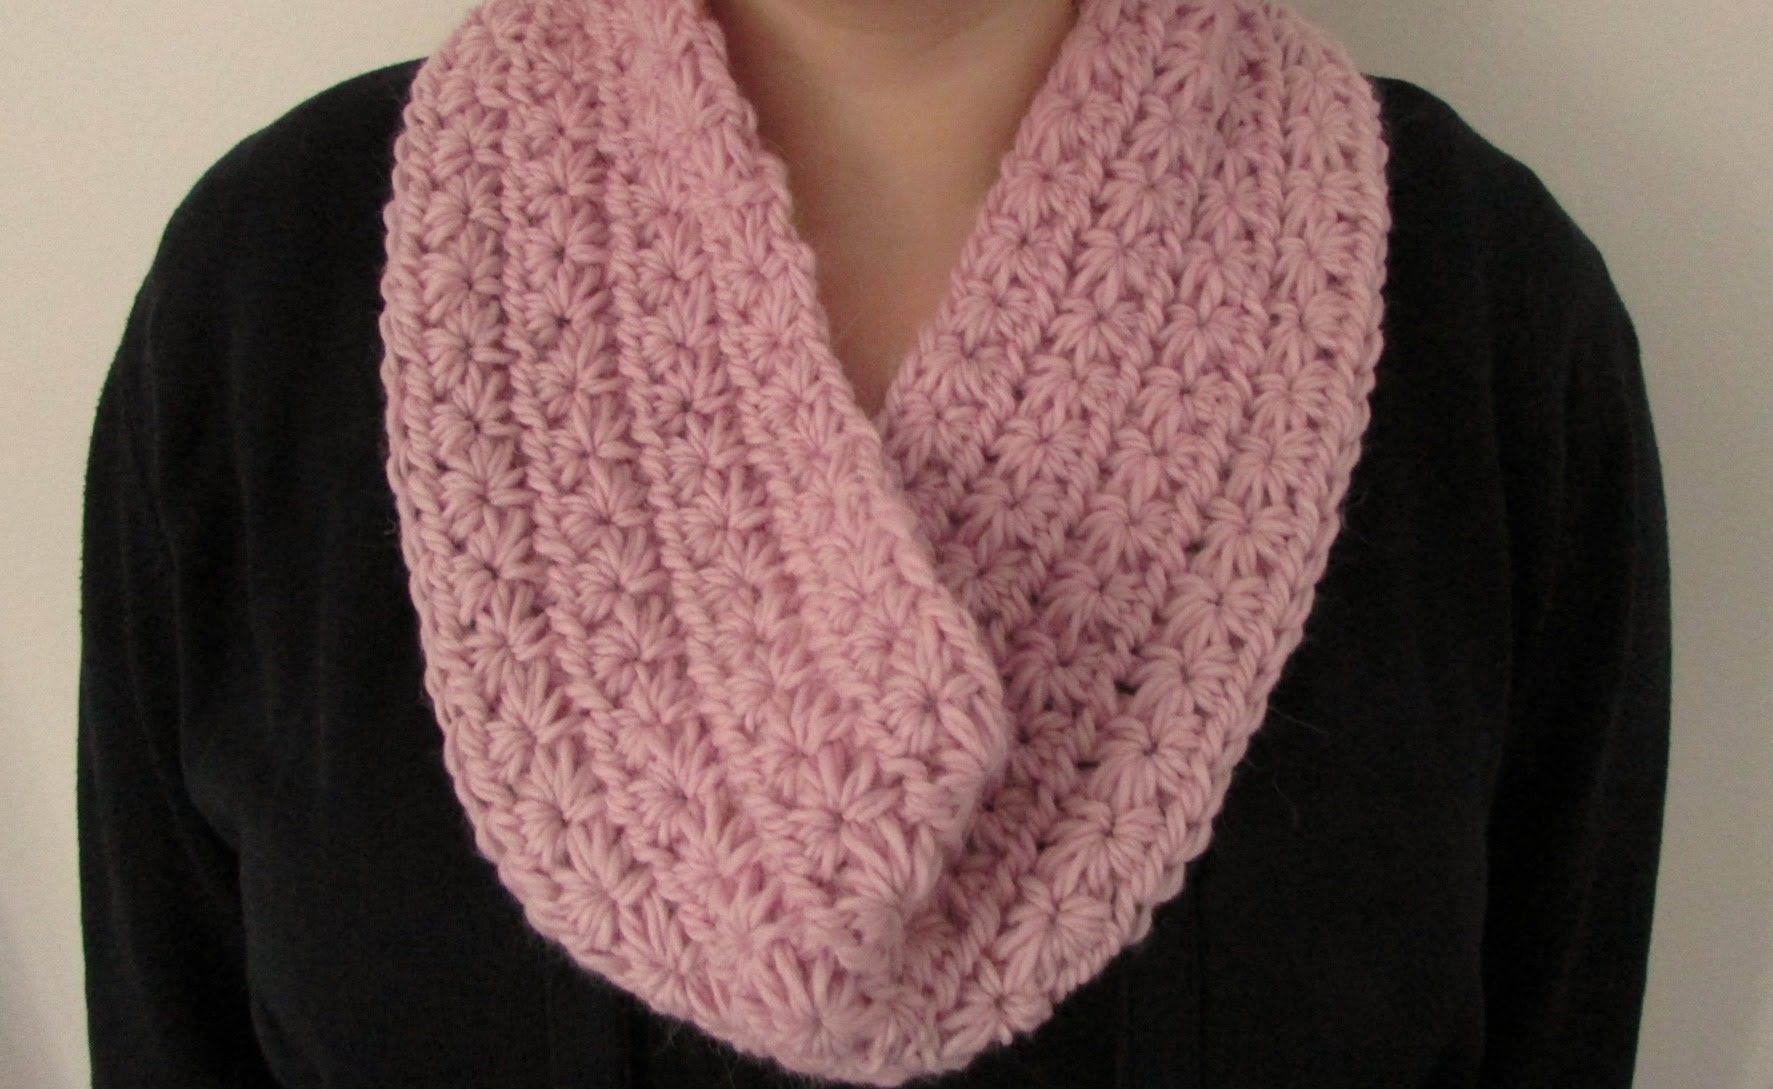 Crochet Stitches For Scarf : Crochet Star Stitch Tutorial and Patterns Stitch Piece n Purl